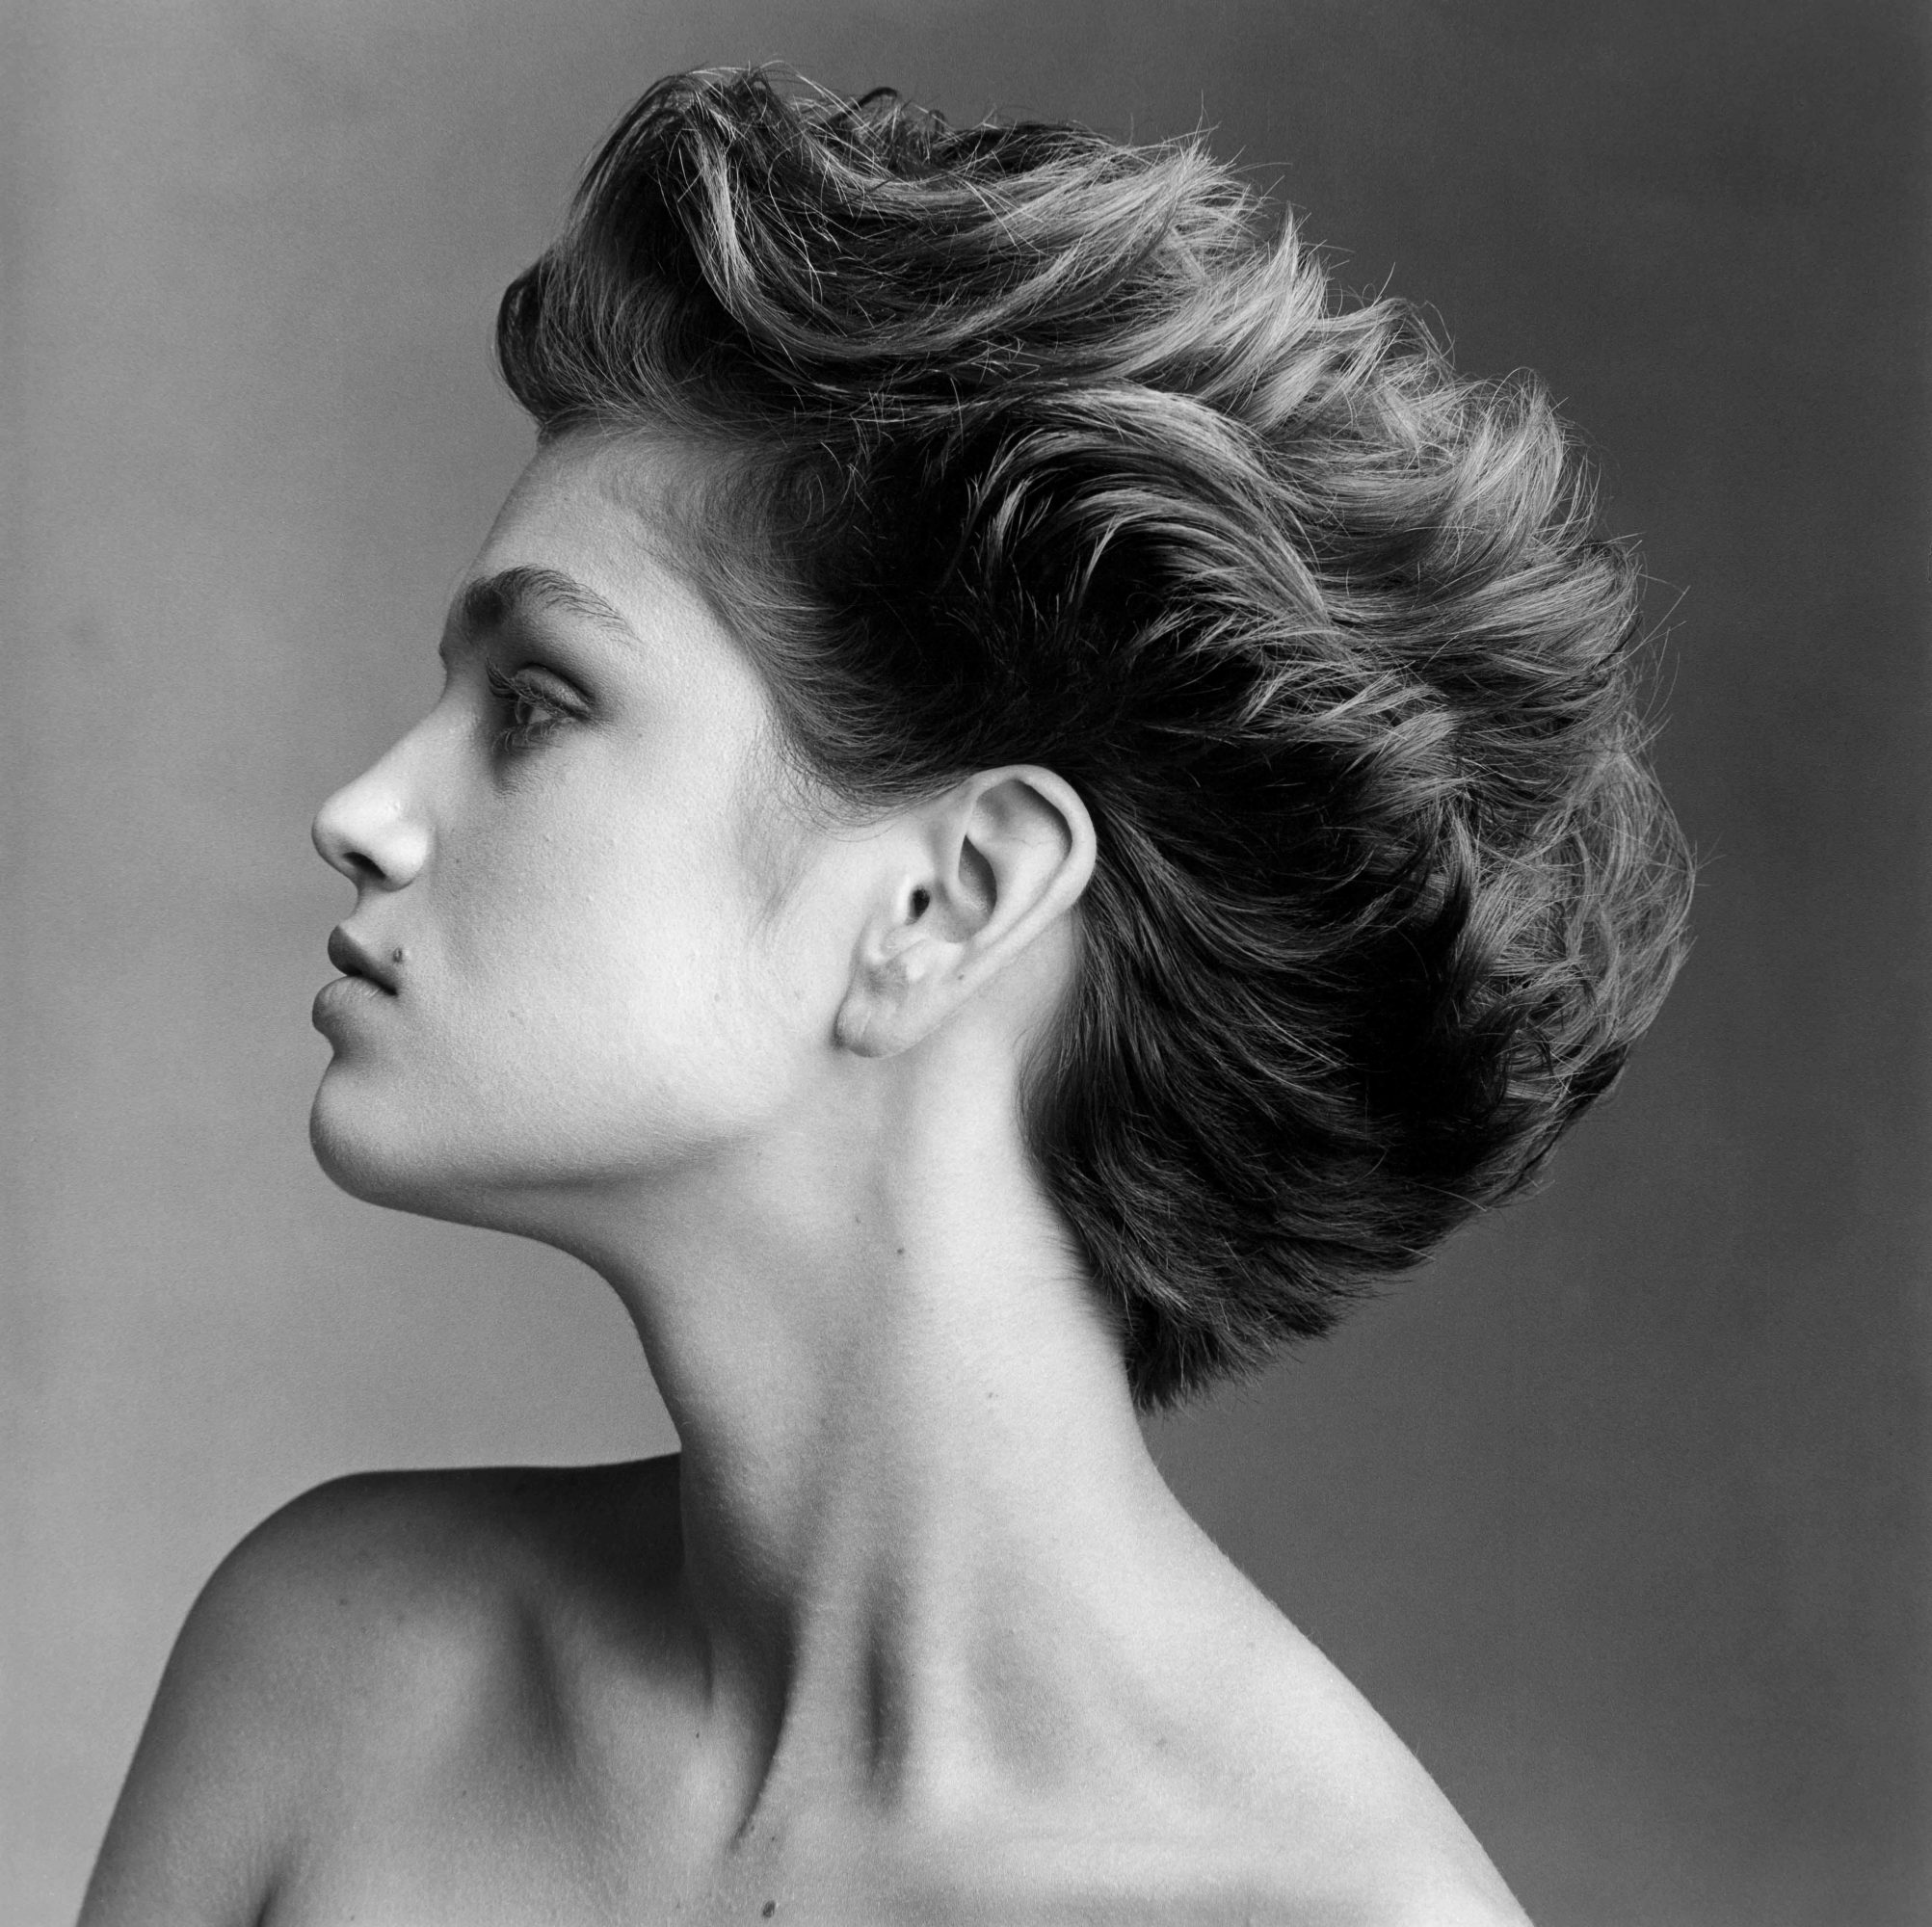 Marc_Hauser_Portraits_Cindy_Crawford.jpg